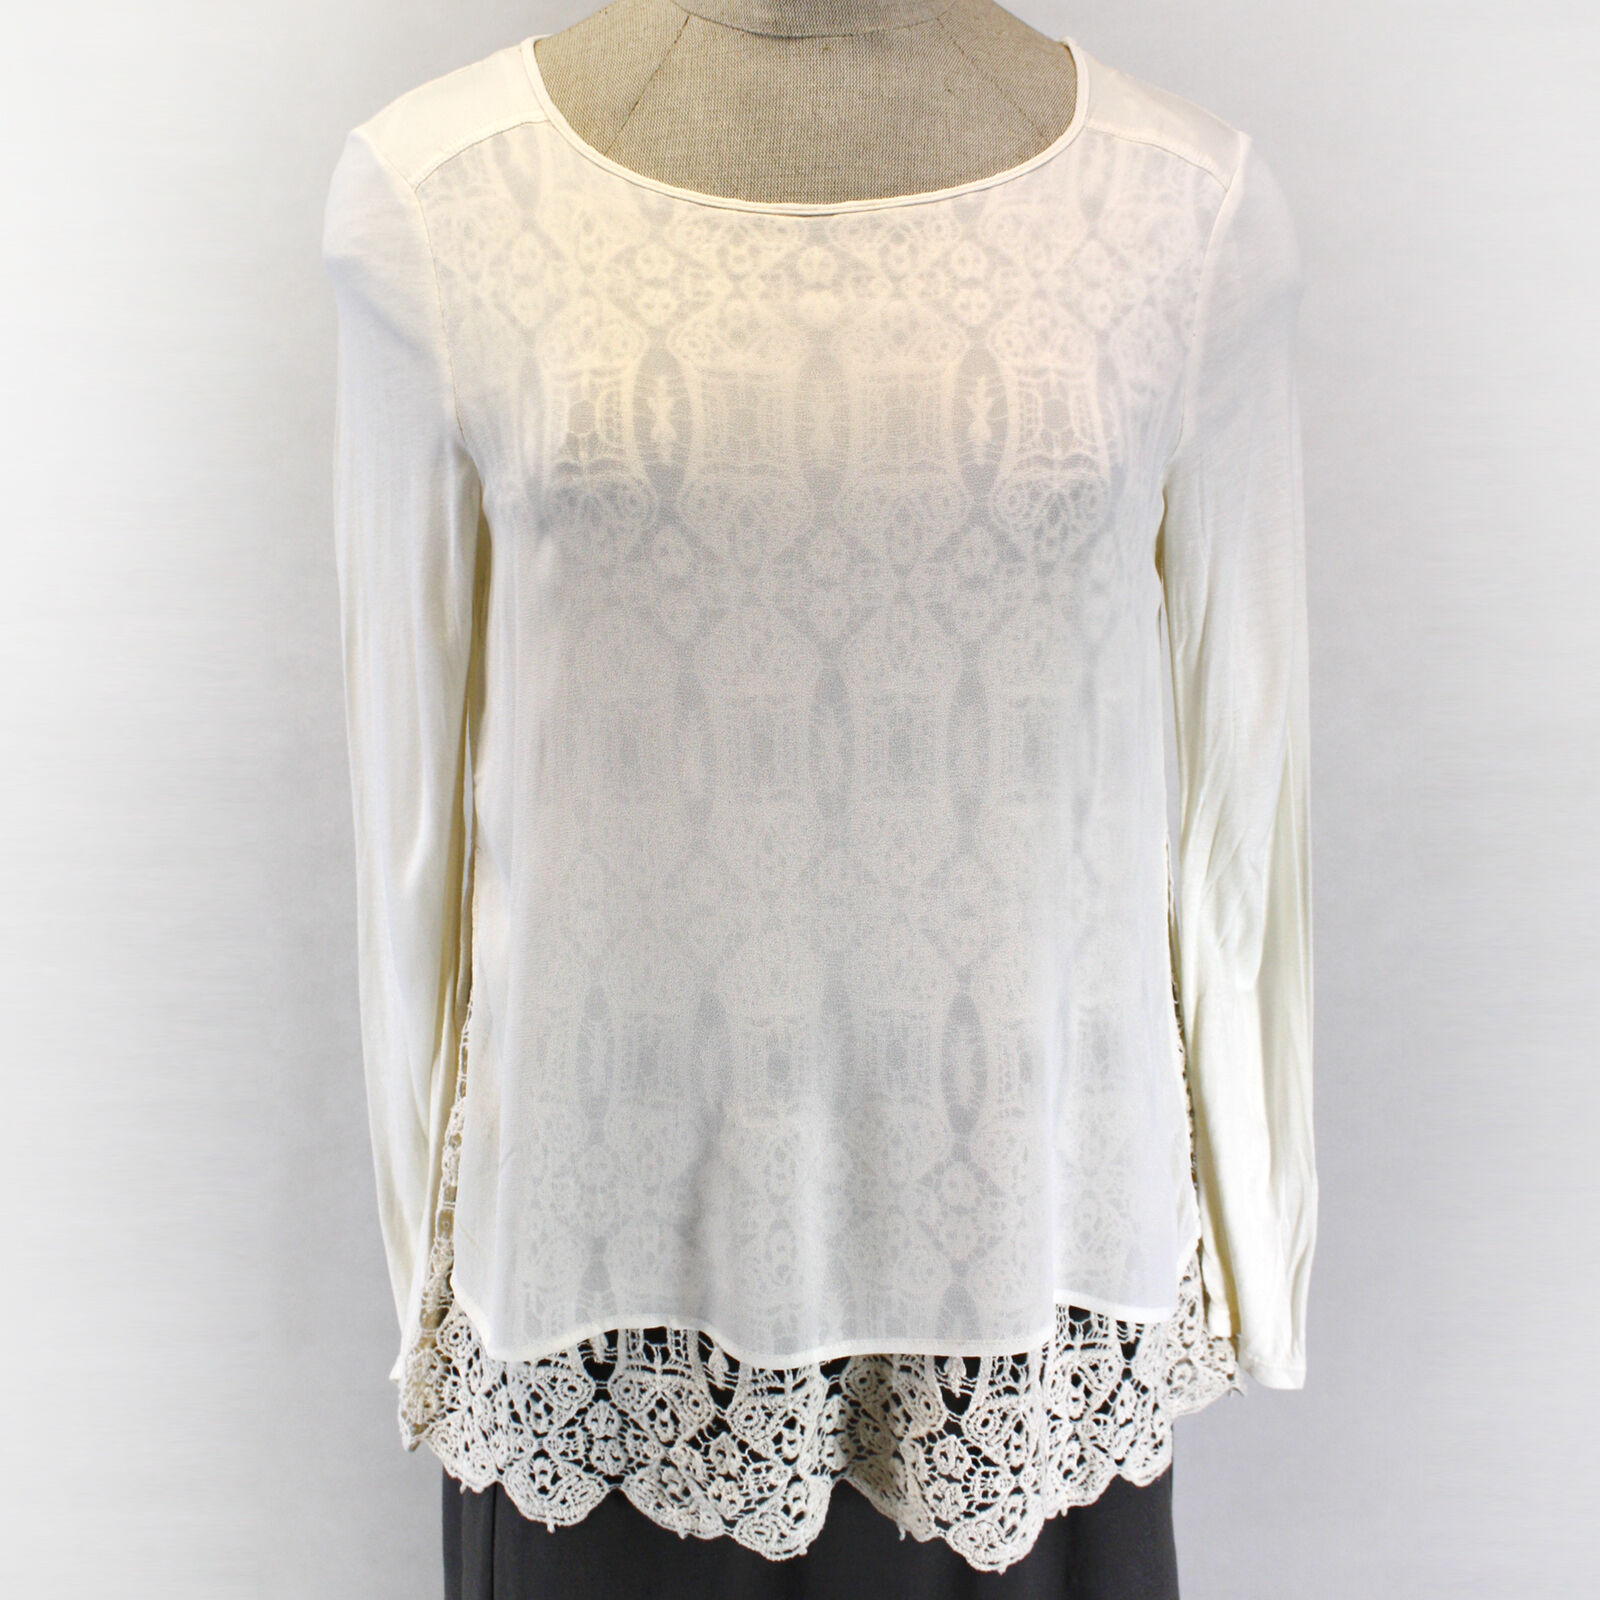 NEW XCVI Ivory Layered Sheer Mesh & Lace Knit Asymmetric Tunic Blouse Top XL